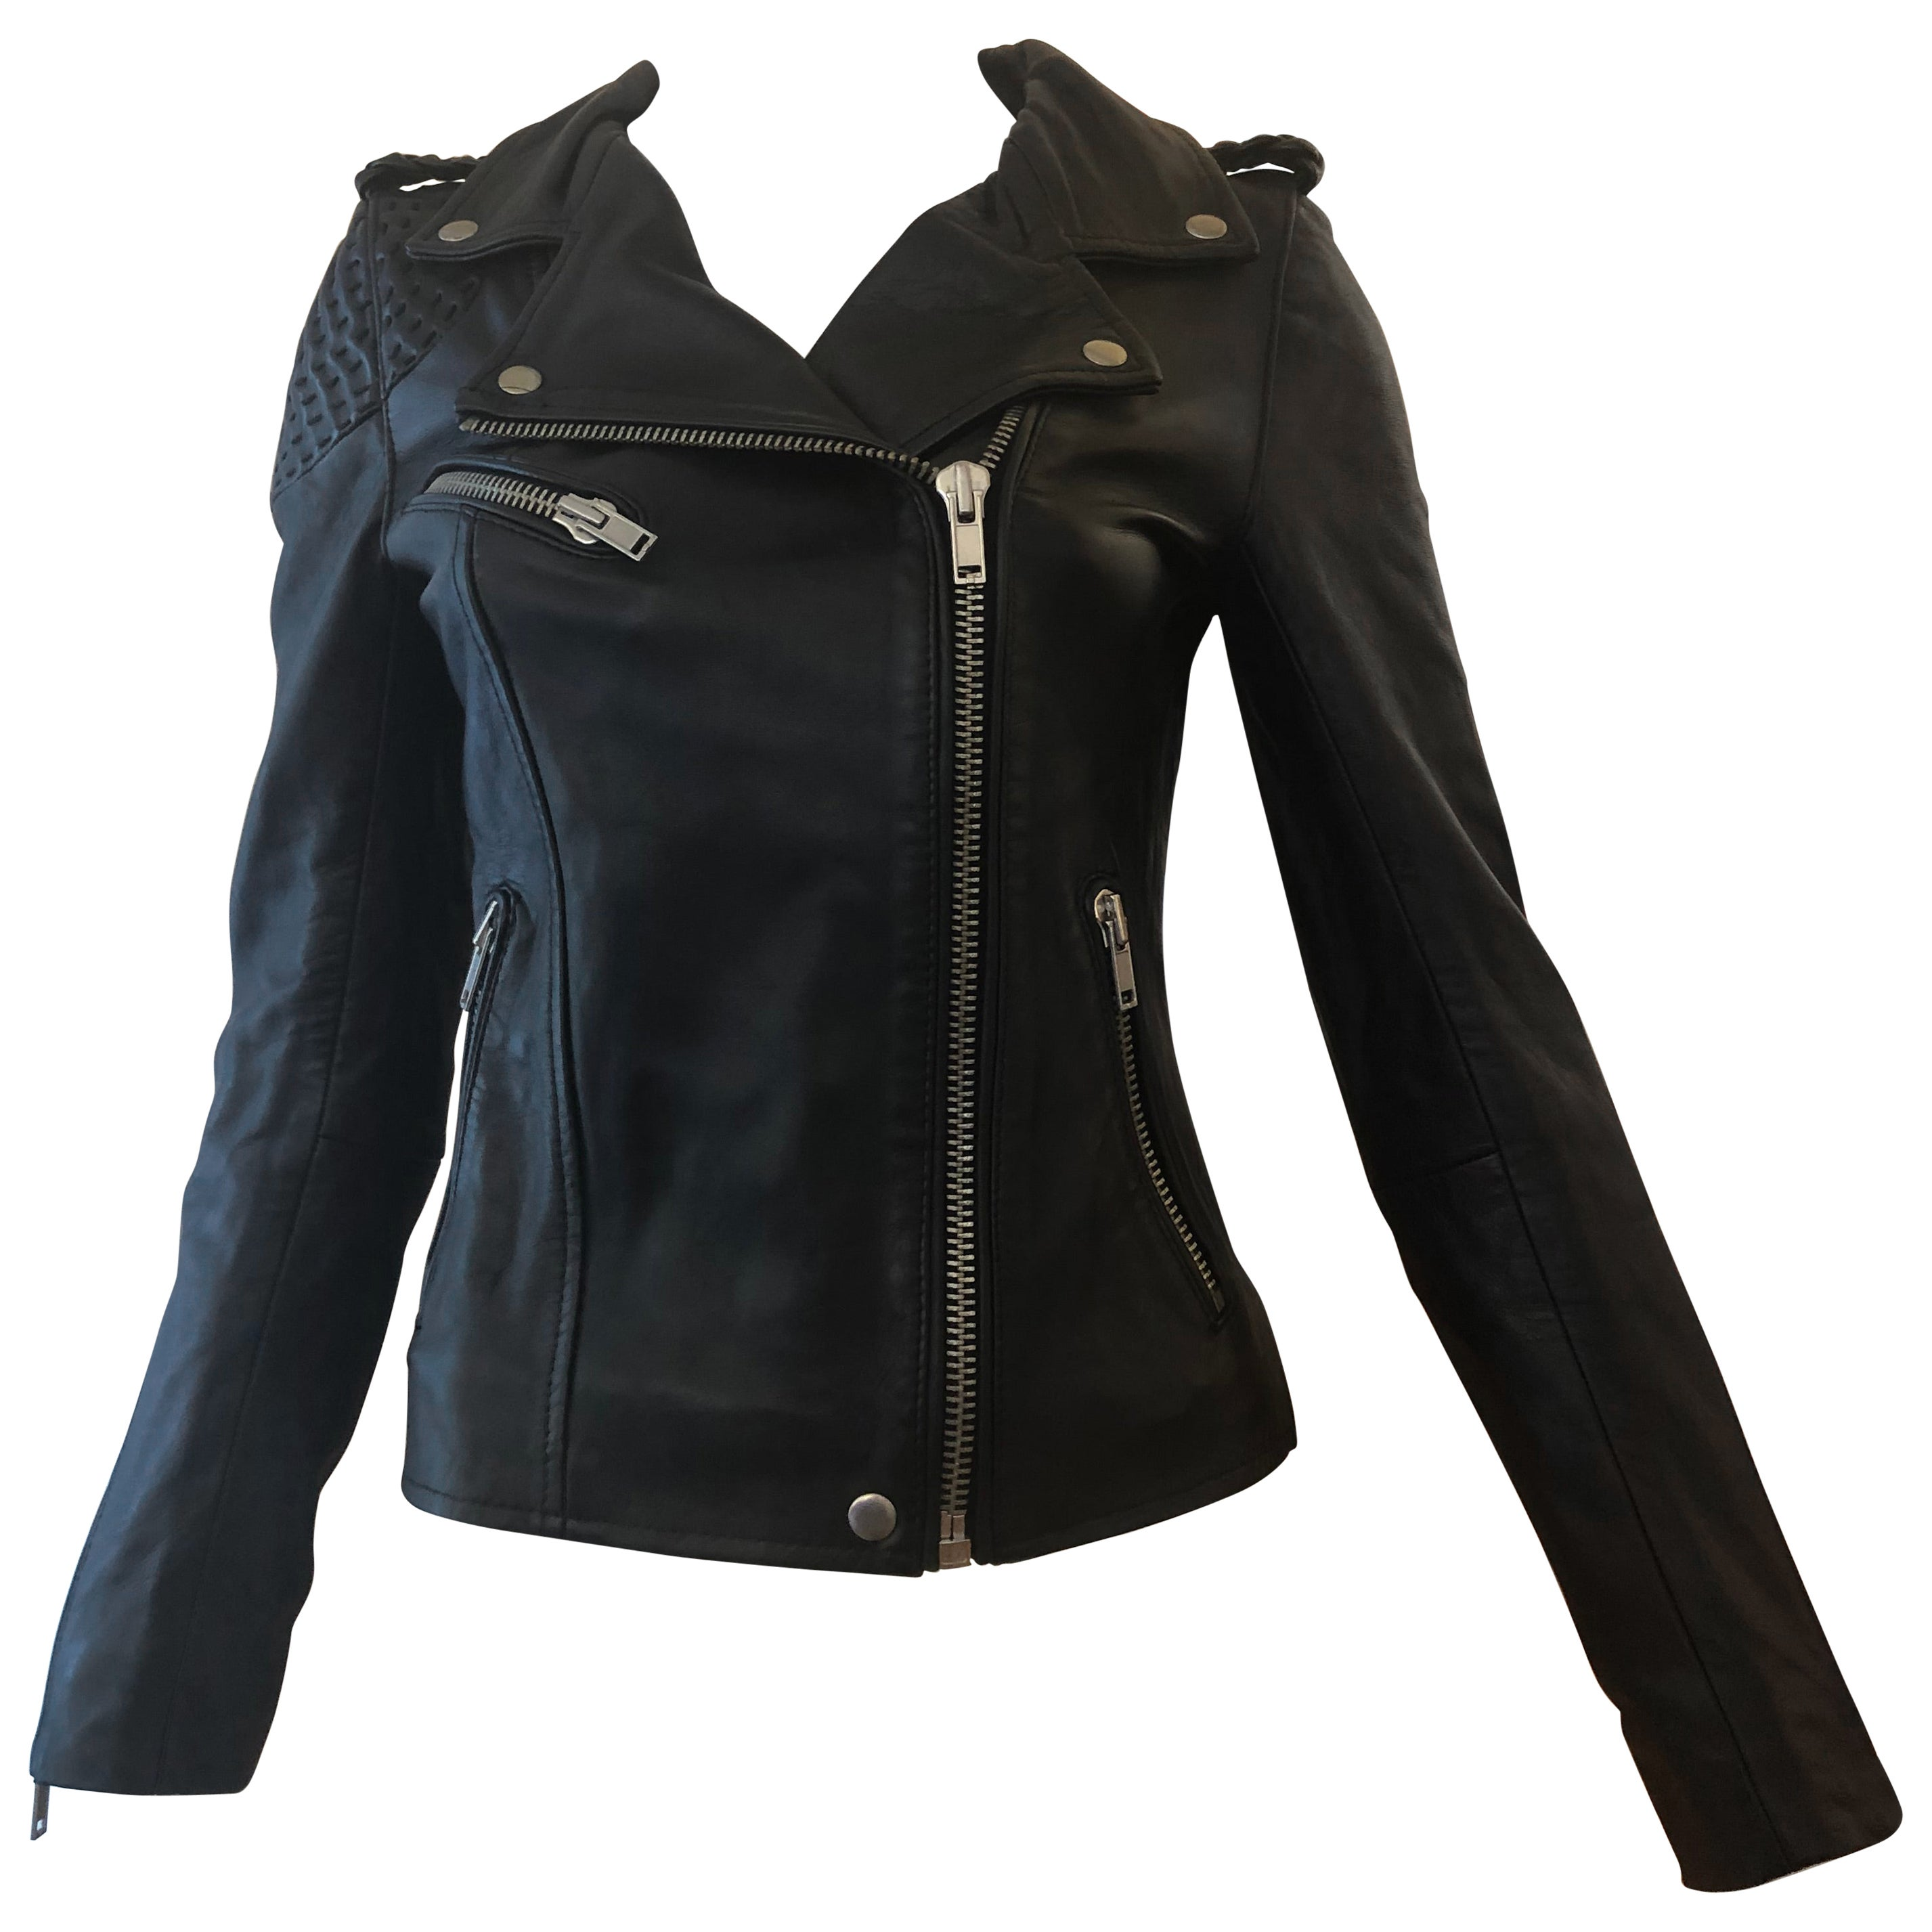 c66738fd9 MAJE Buttery Soft Black Leather Jacket w/Woven Leather Shoulders (S) New W/T